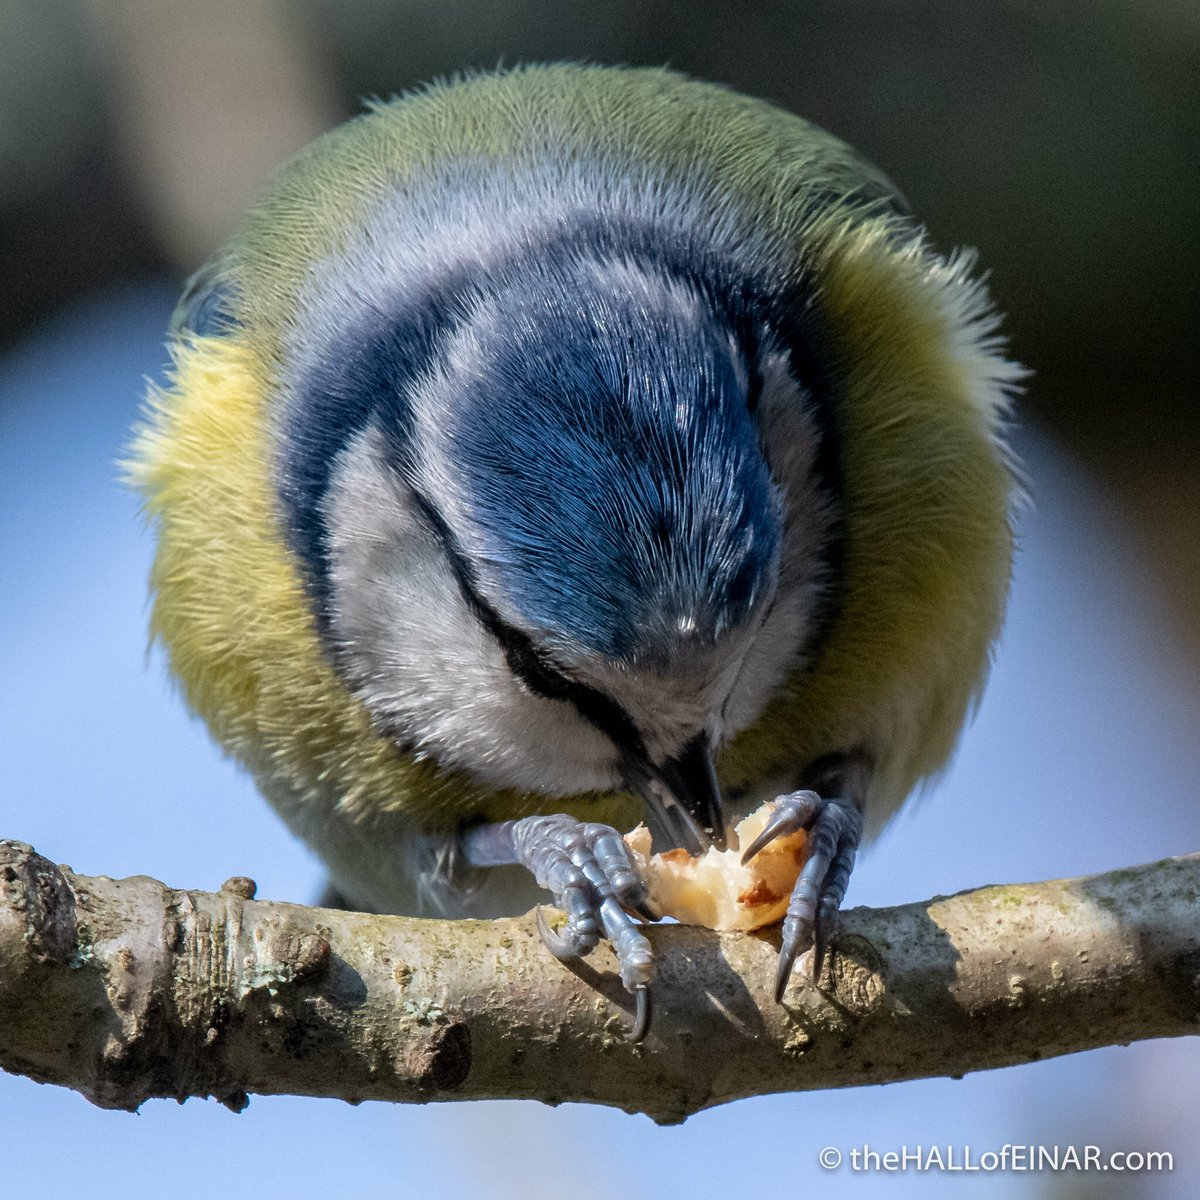 A Blue Tit showing use of the feet to hold a peanut while perching. Such amazing agility. @Natures_Voice @StoverPark <br>http://pic.twitter.com/Et0KIHfnGd